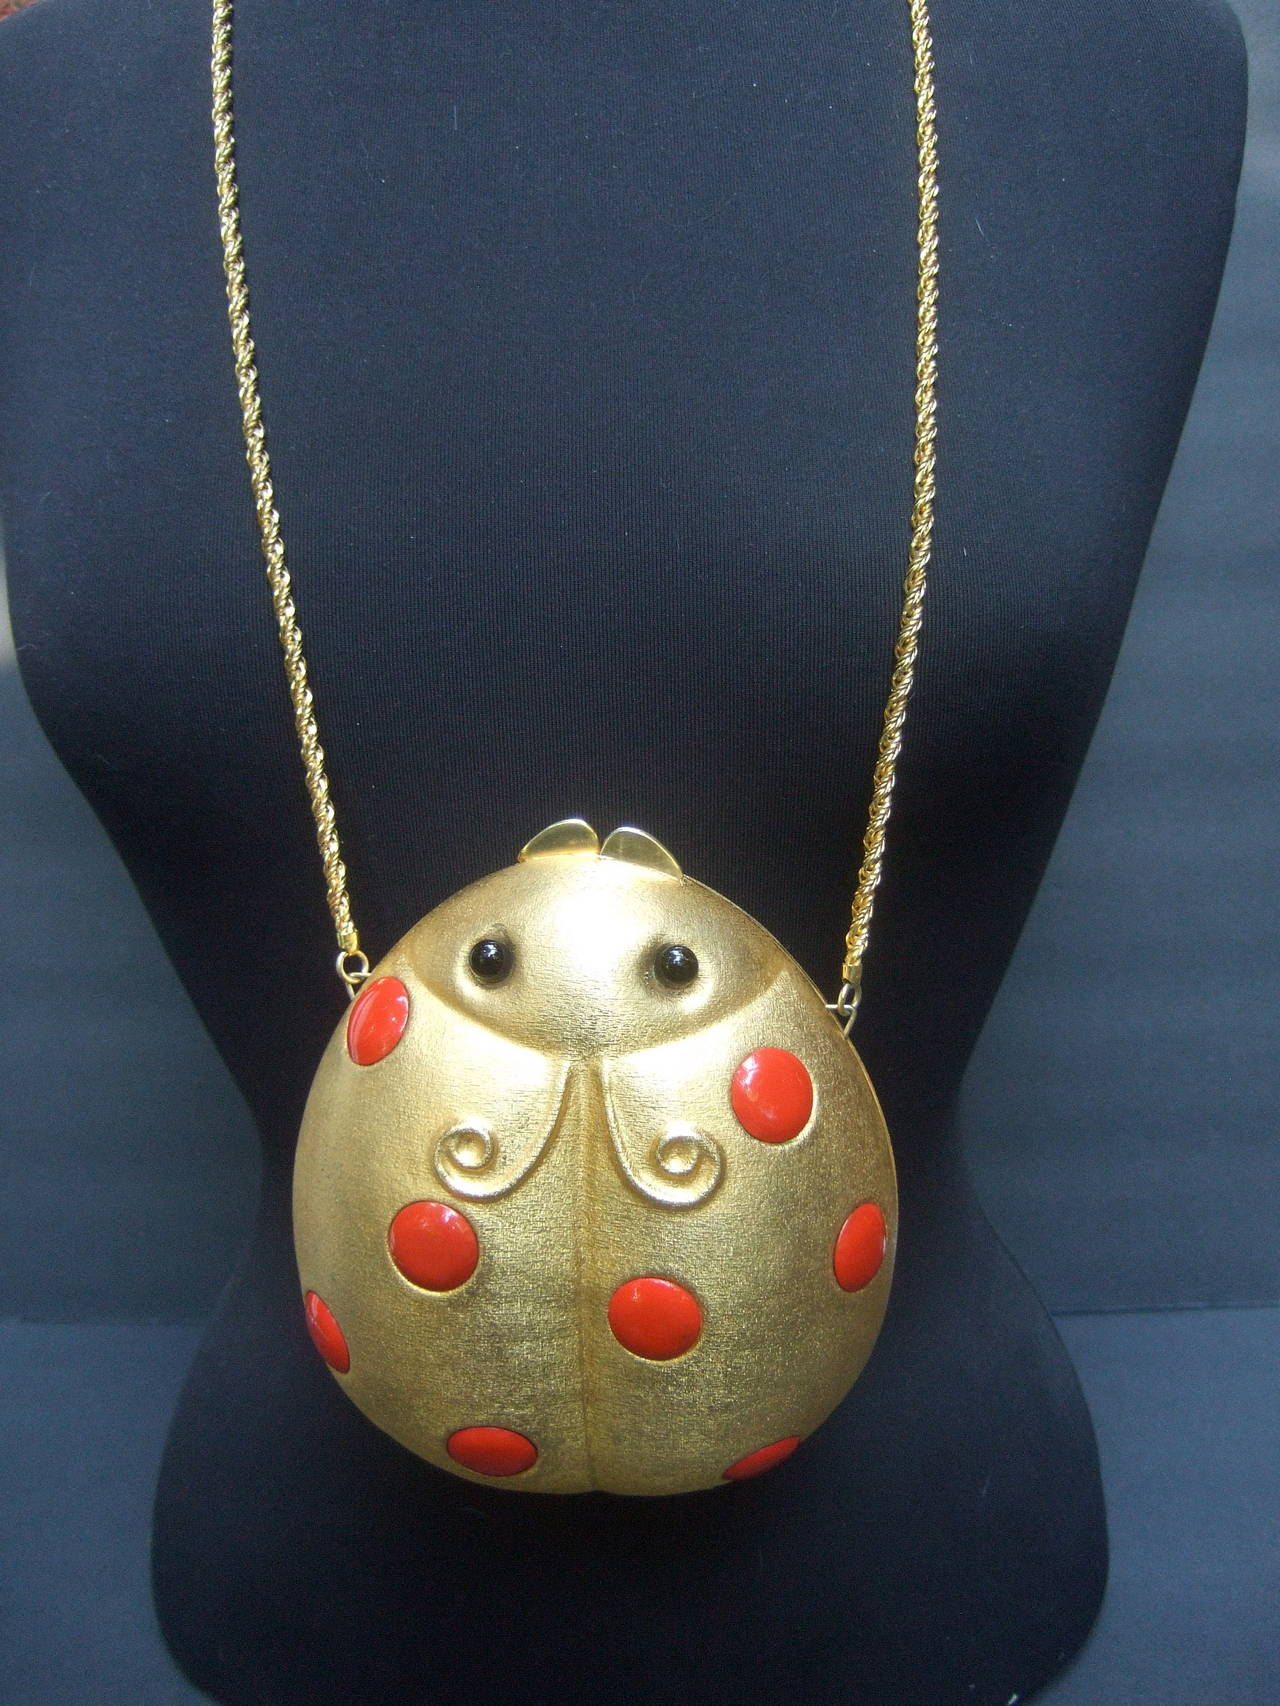 Women's Saks Fifth Avenue Gilt Metal Lady Bug Evening Bag Made in Italy c 1970 For Sale